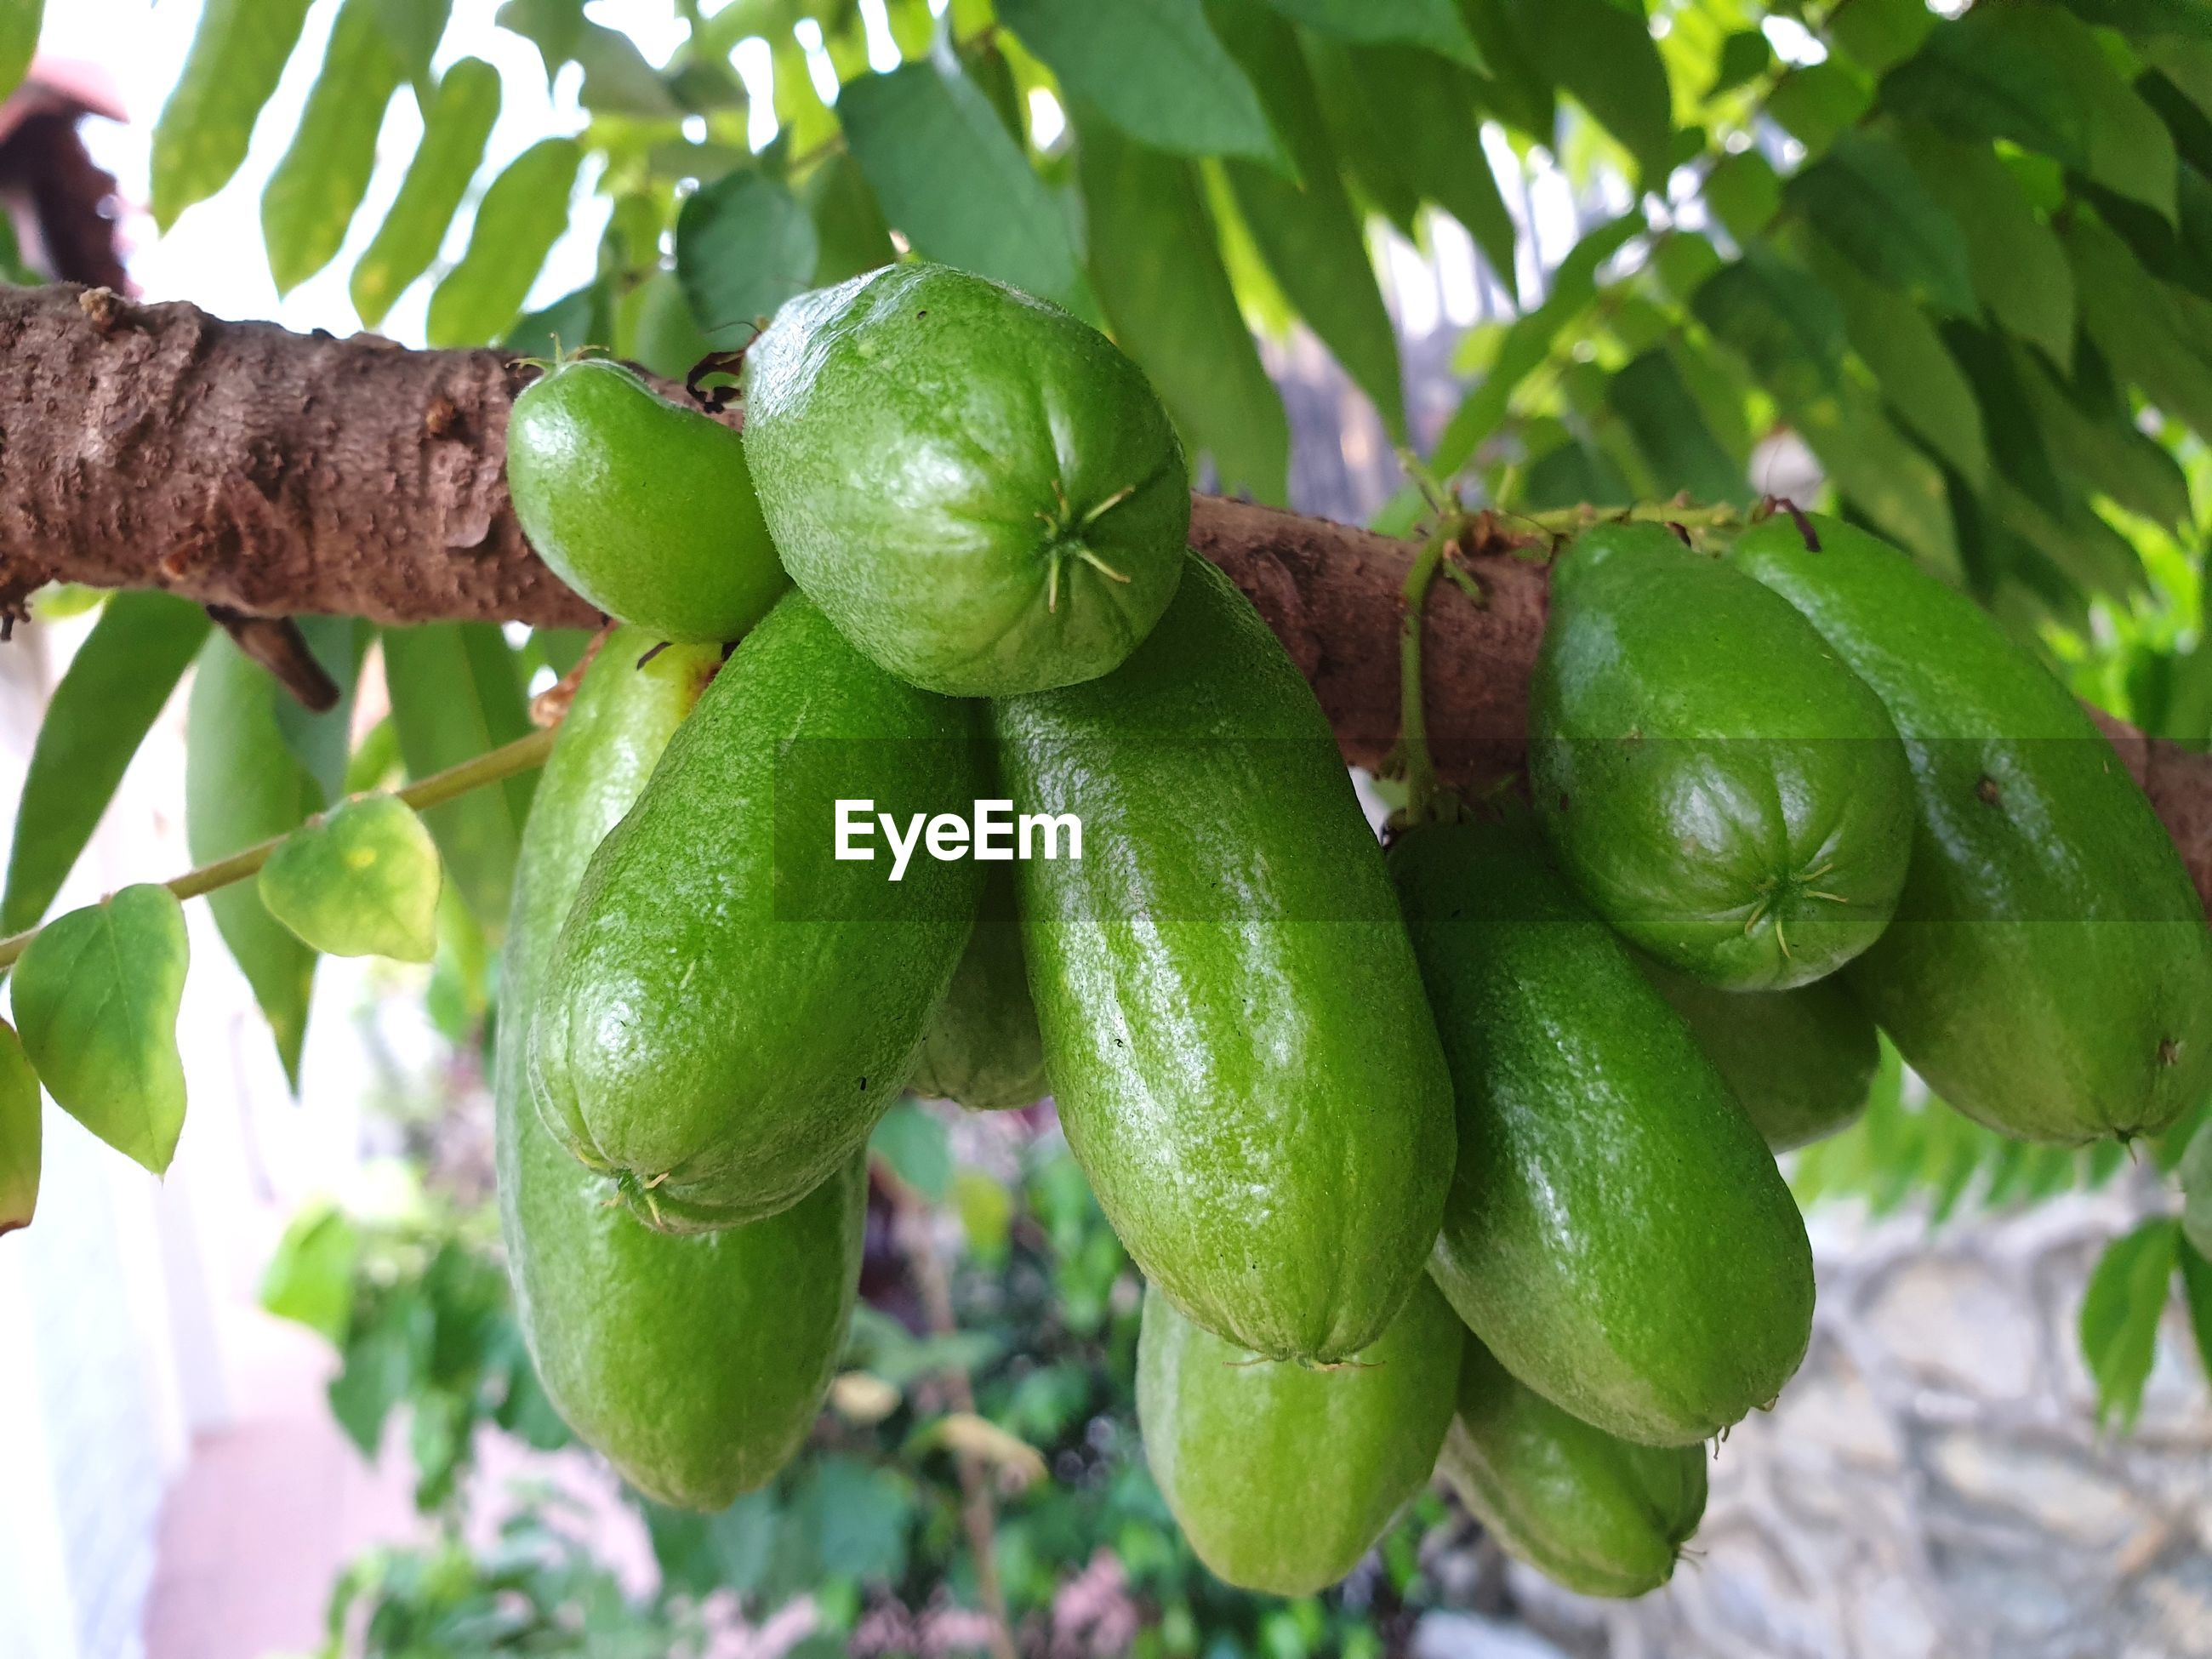 CLOSE-UP OF FRESH FRUITS ON TREE